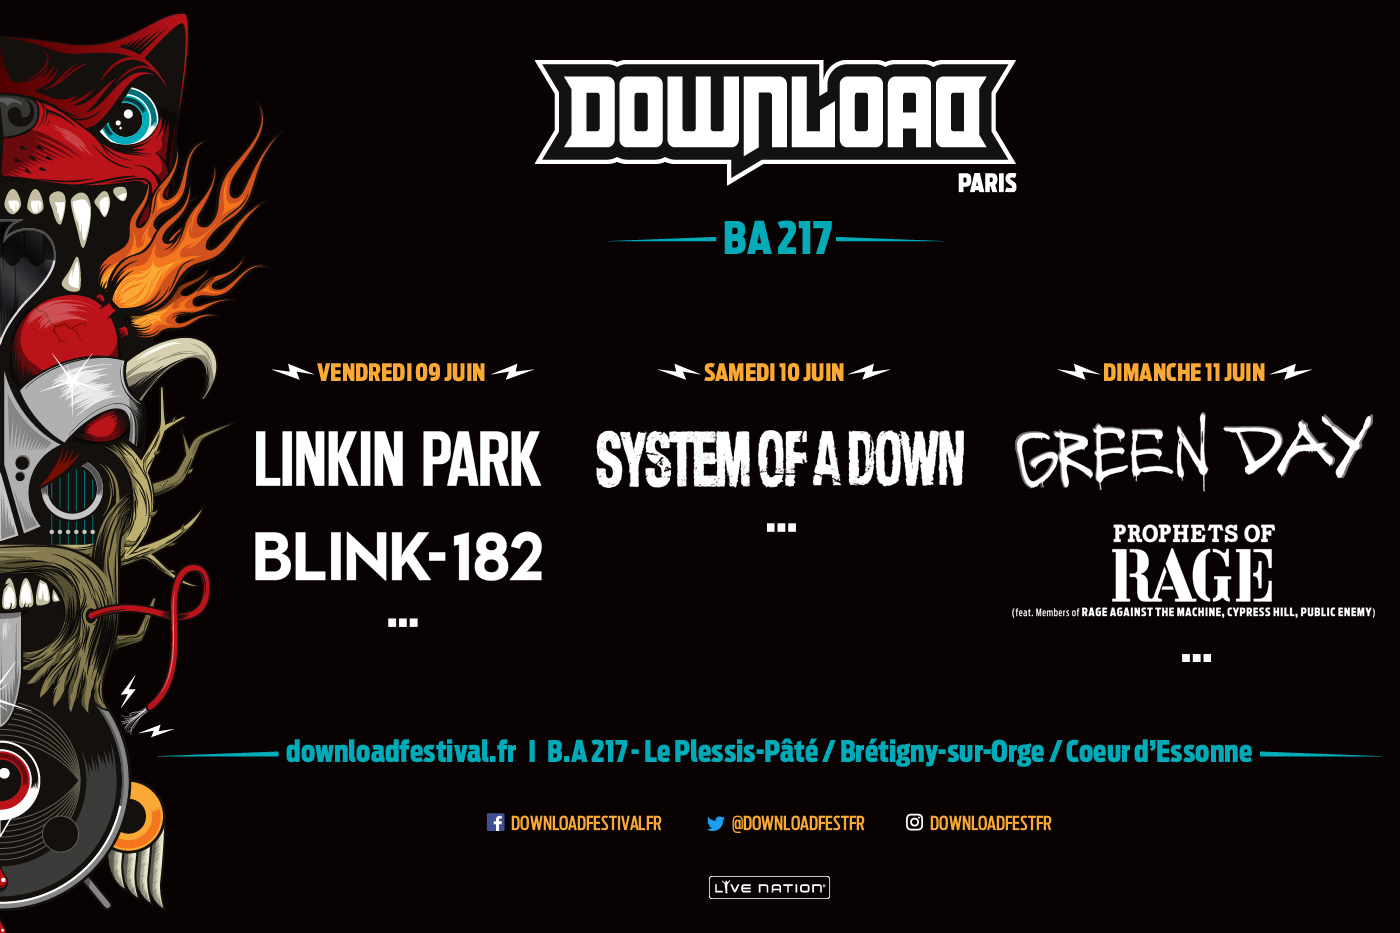 Download Festival. 0 Euros por Linkin Park - Página 20 1478708967